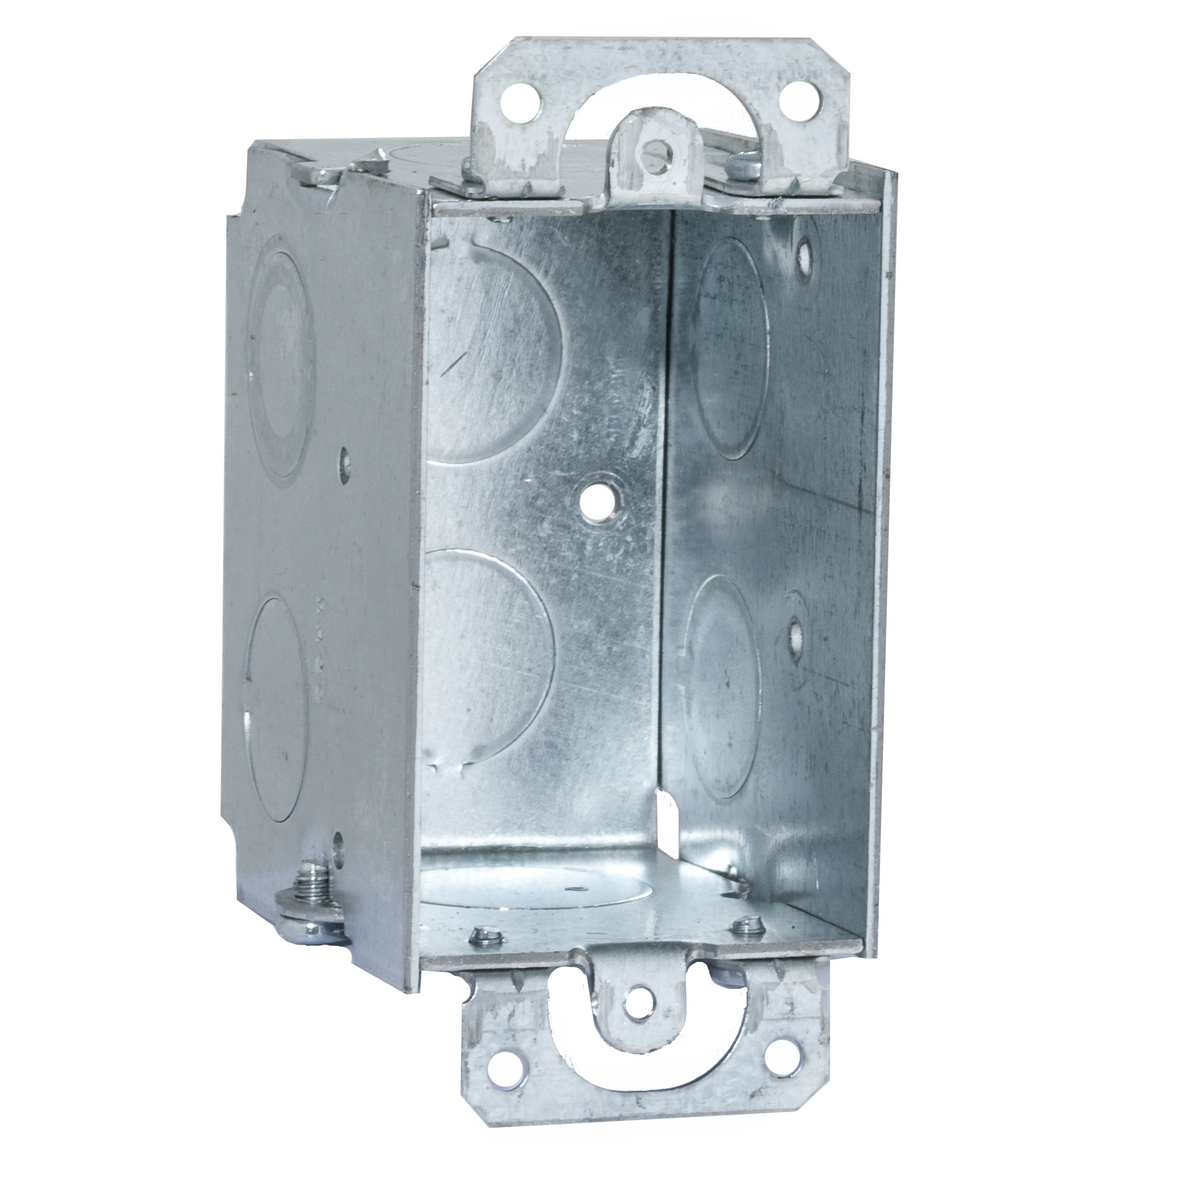 Hubbell-Raco 503 Switch Box